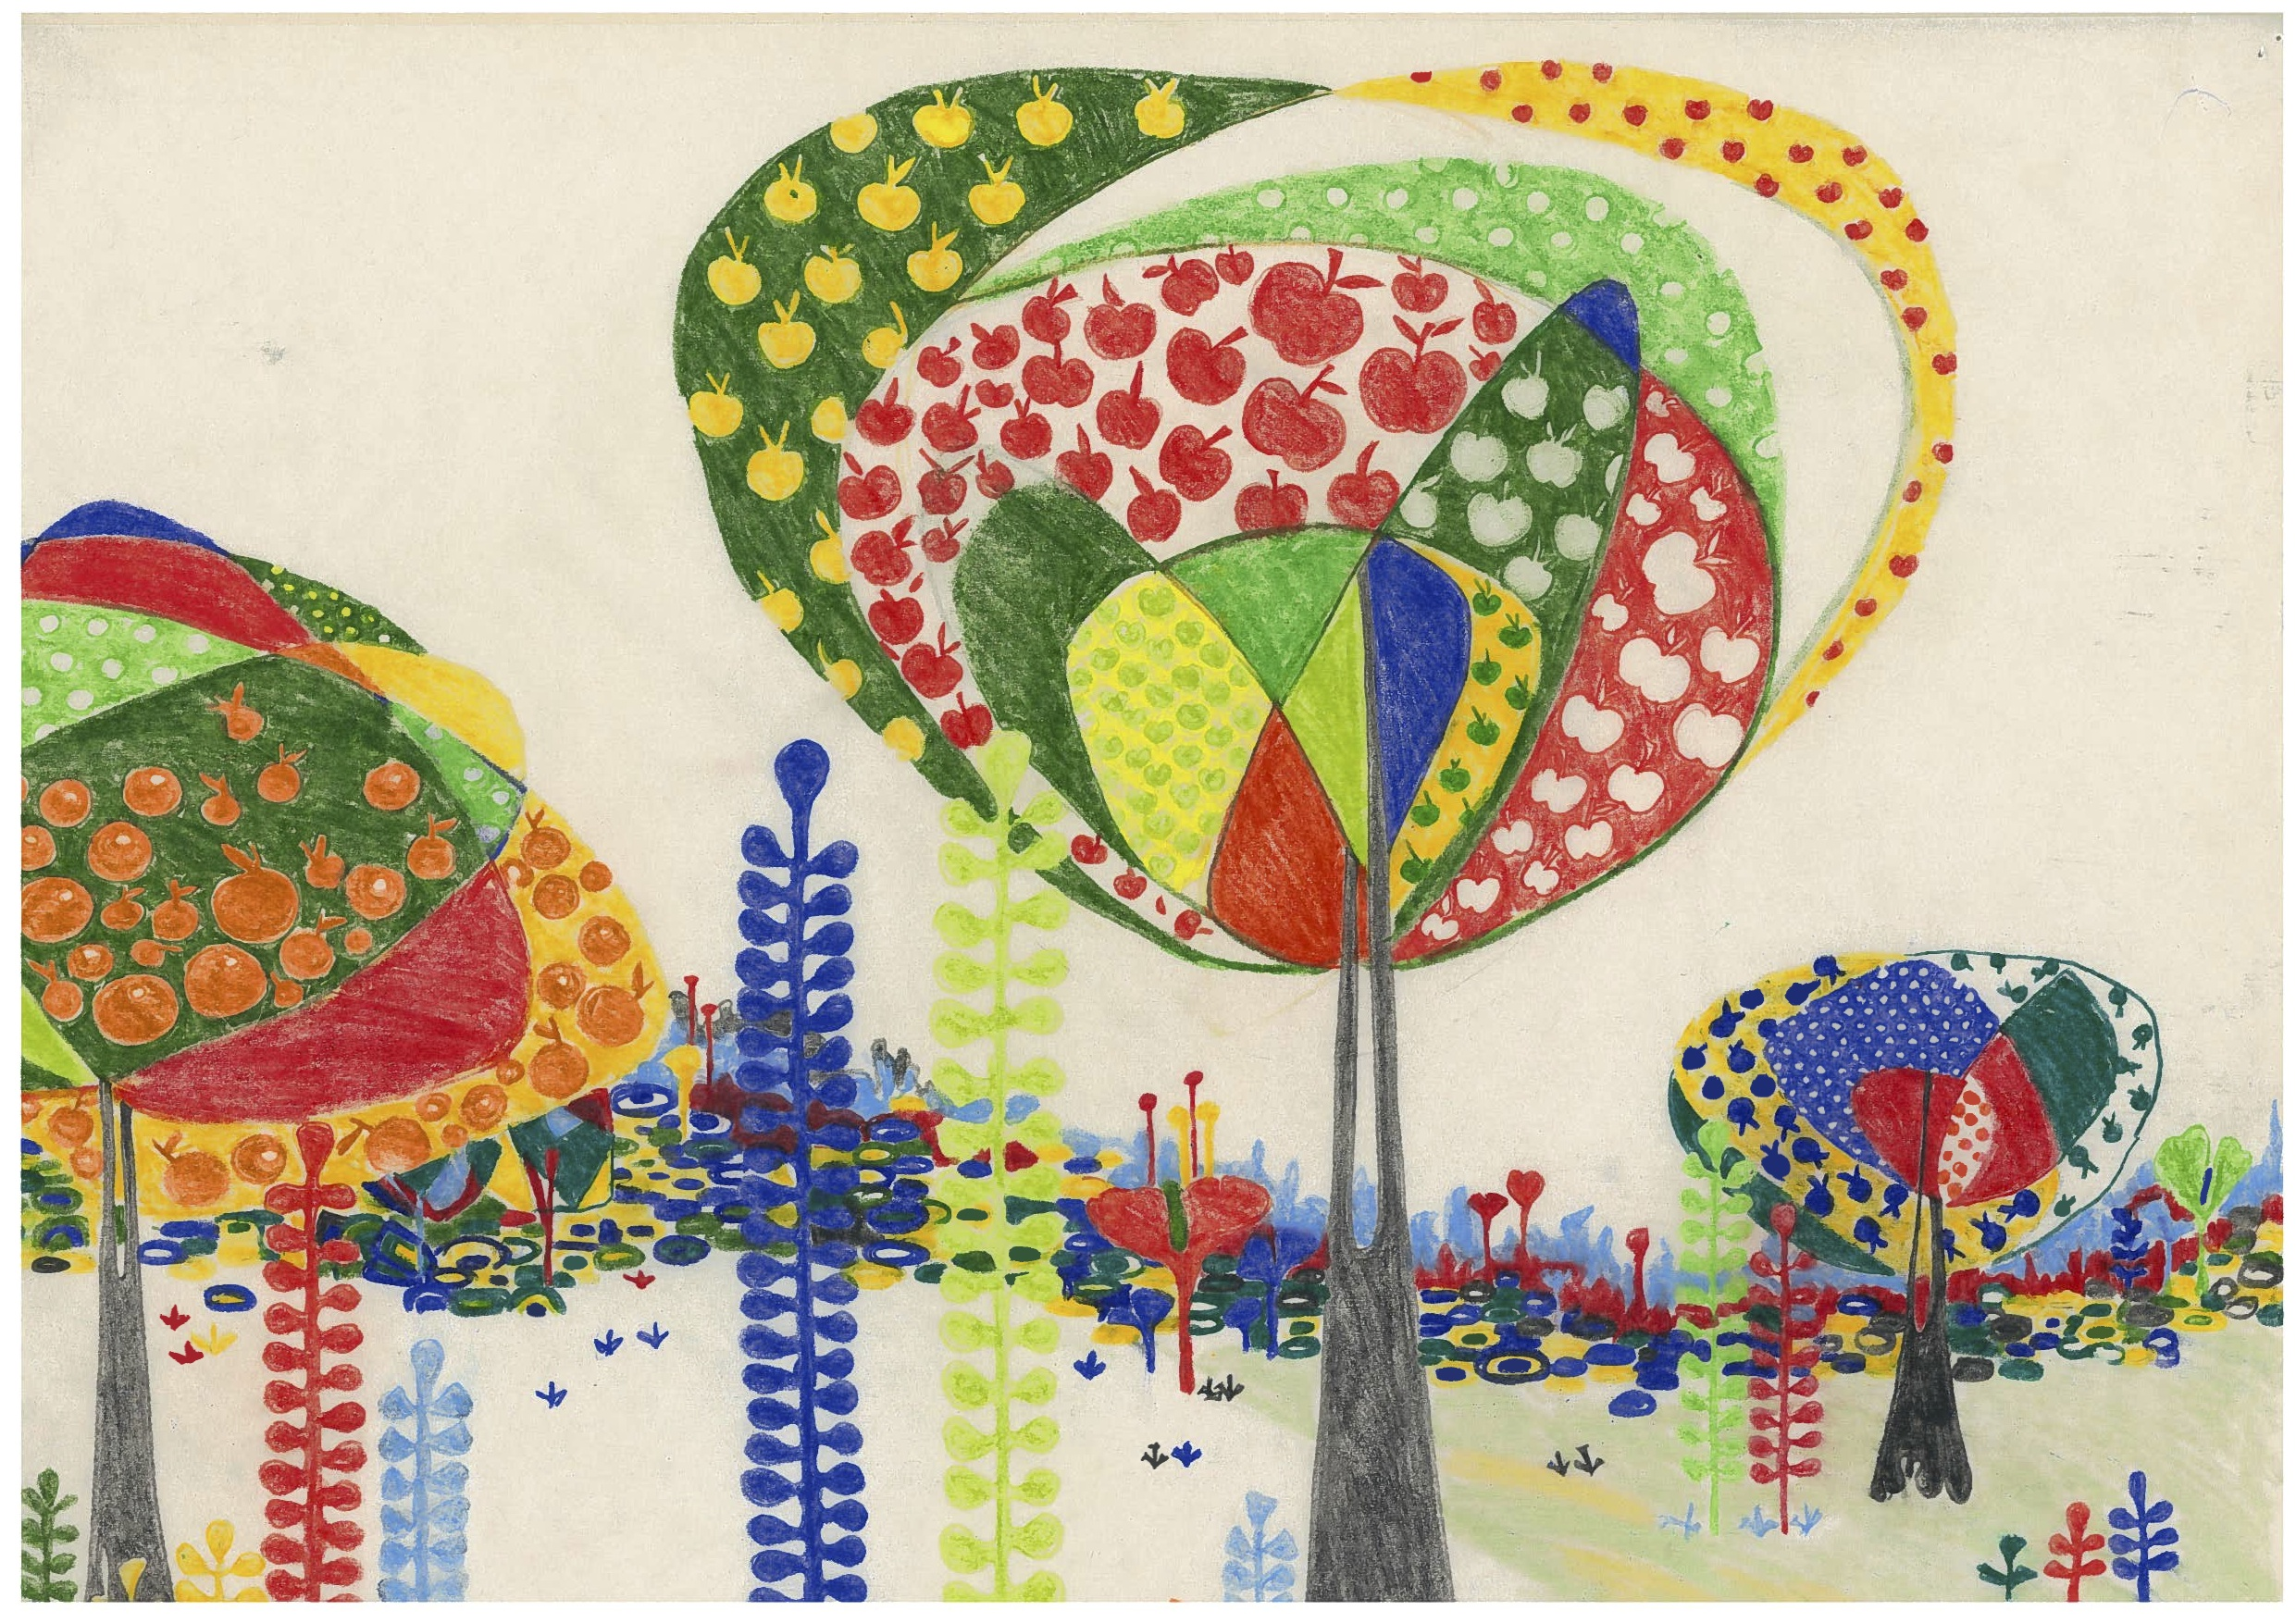 "Aditi Raychoudhury. Land of Plenty (In Primary Colors). 2009. 17"" x 14"". Colored Pencils on Tracing Paper."